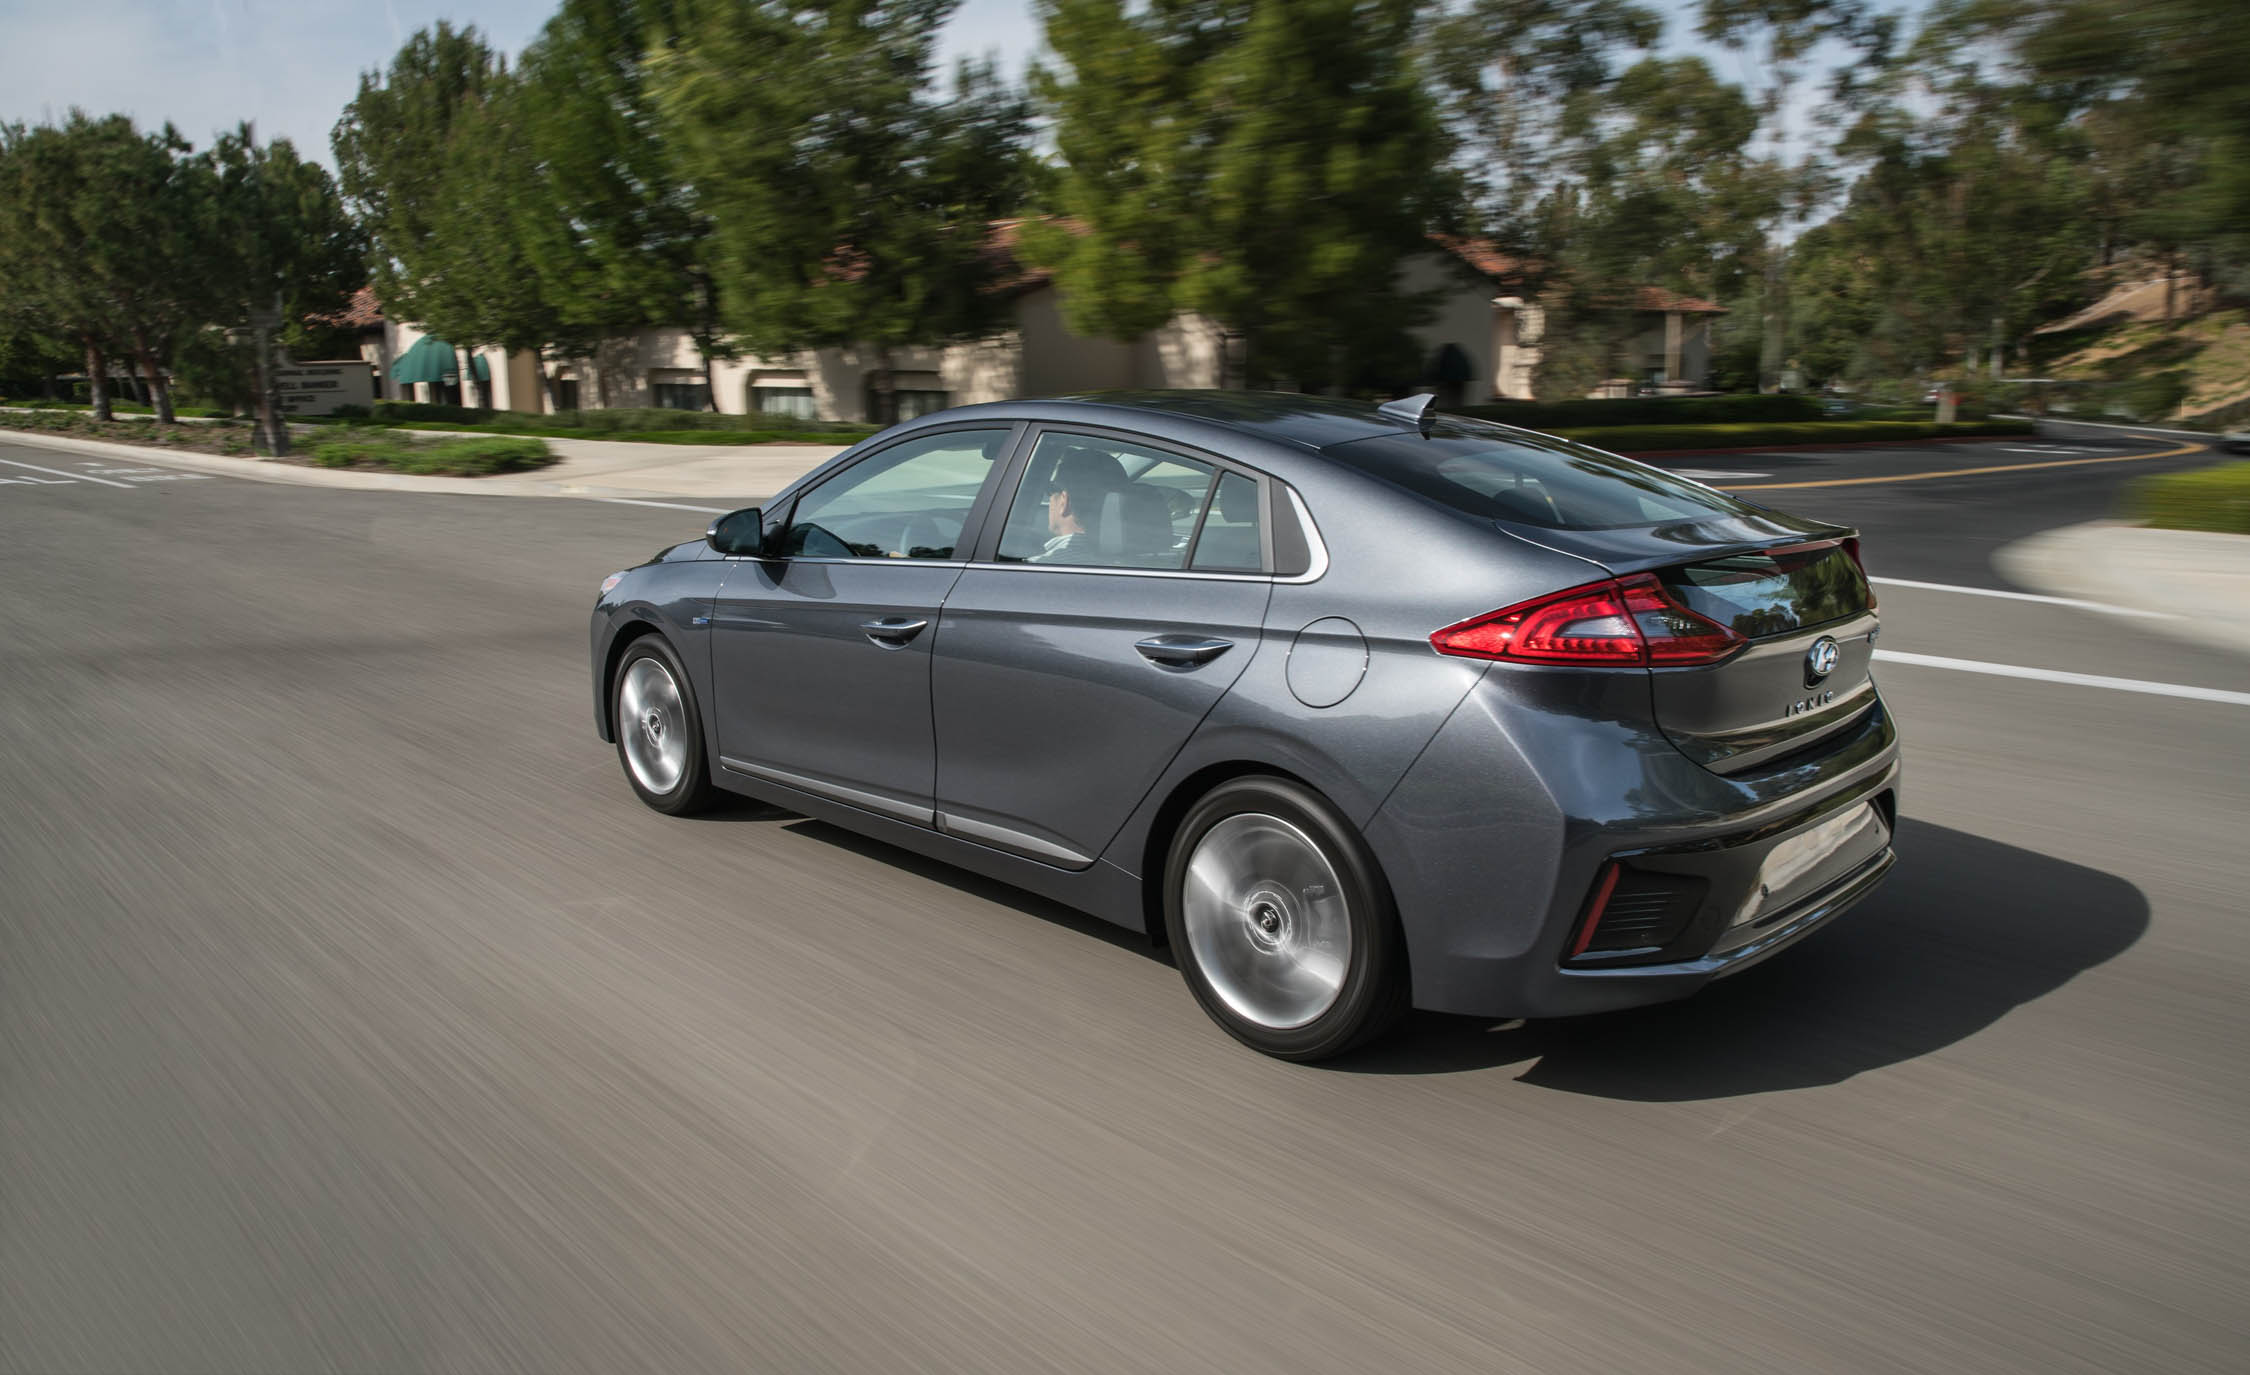 2017 Hyundai Ioniq Hybrid Test Drive Side And Rear View (Photo 65 of 67)